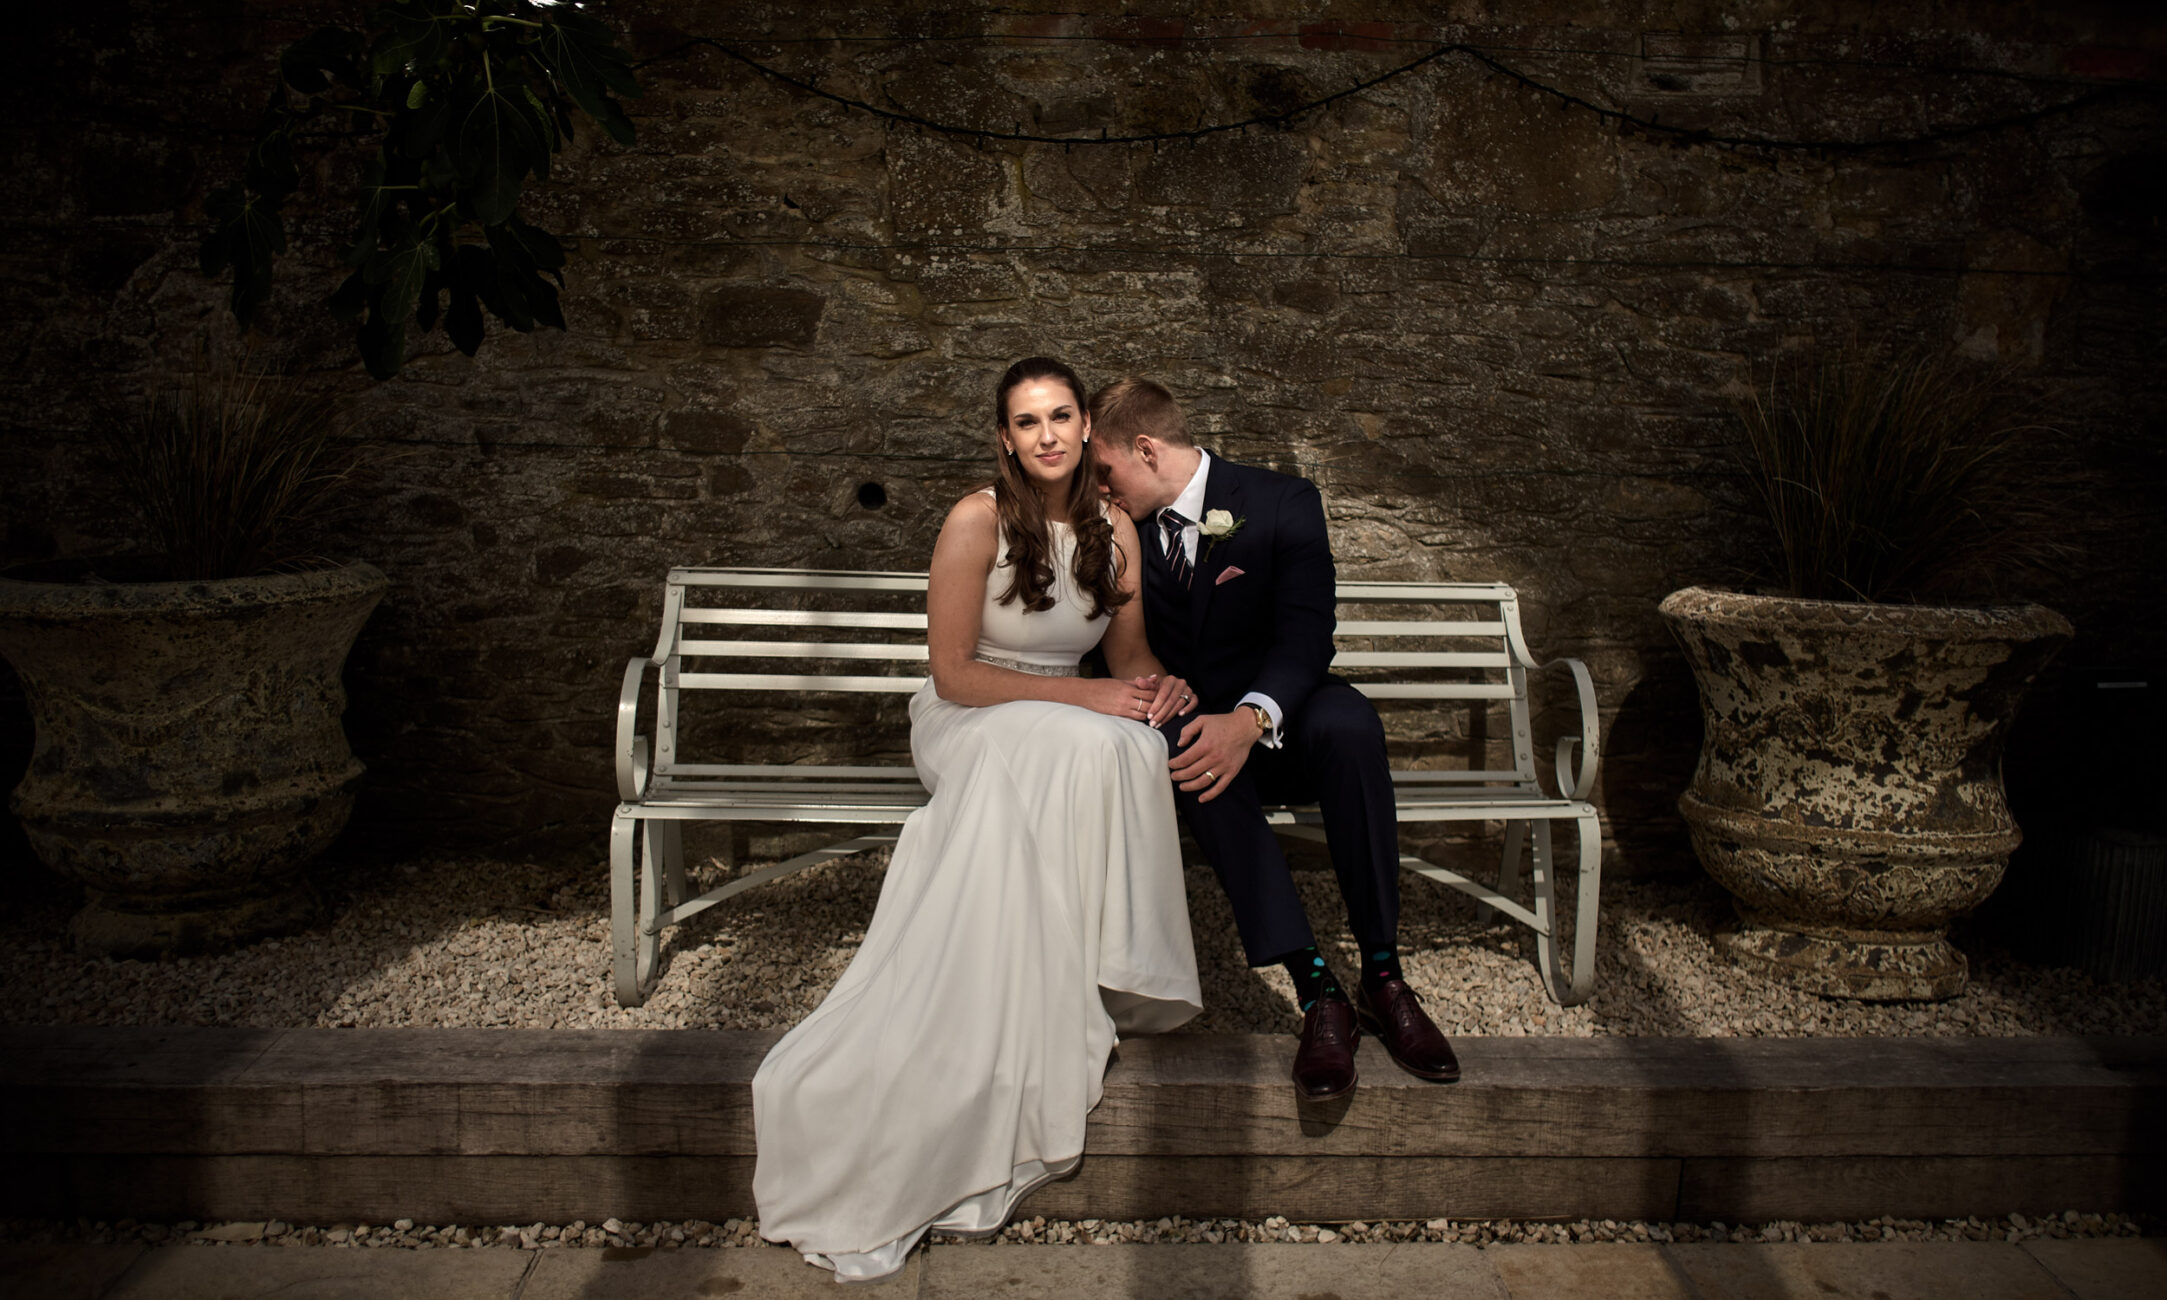 Portrait-of-Bride-and-Groom-at-Gate-Street-Barn-in-Surrey